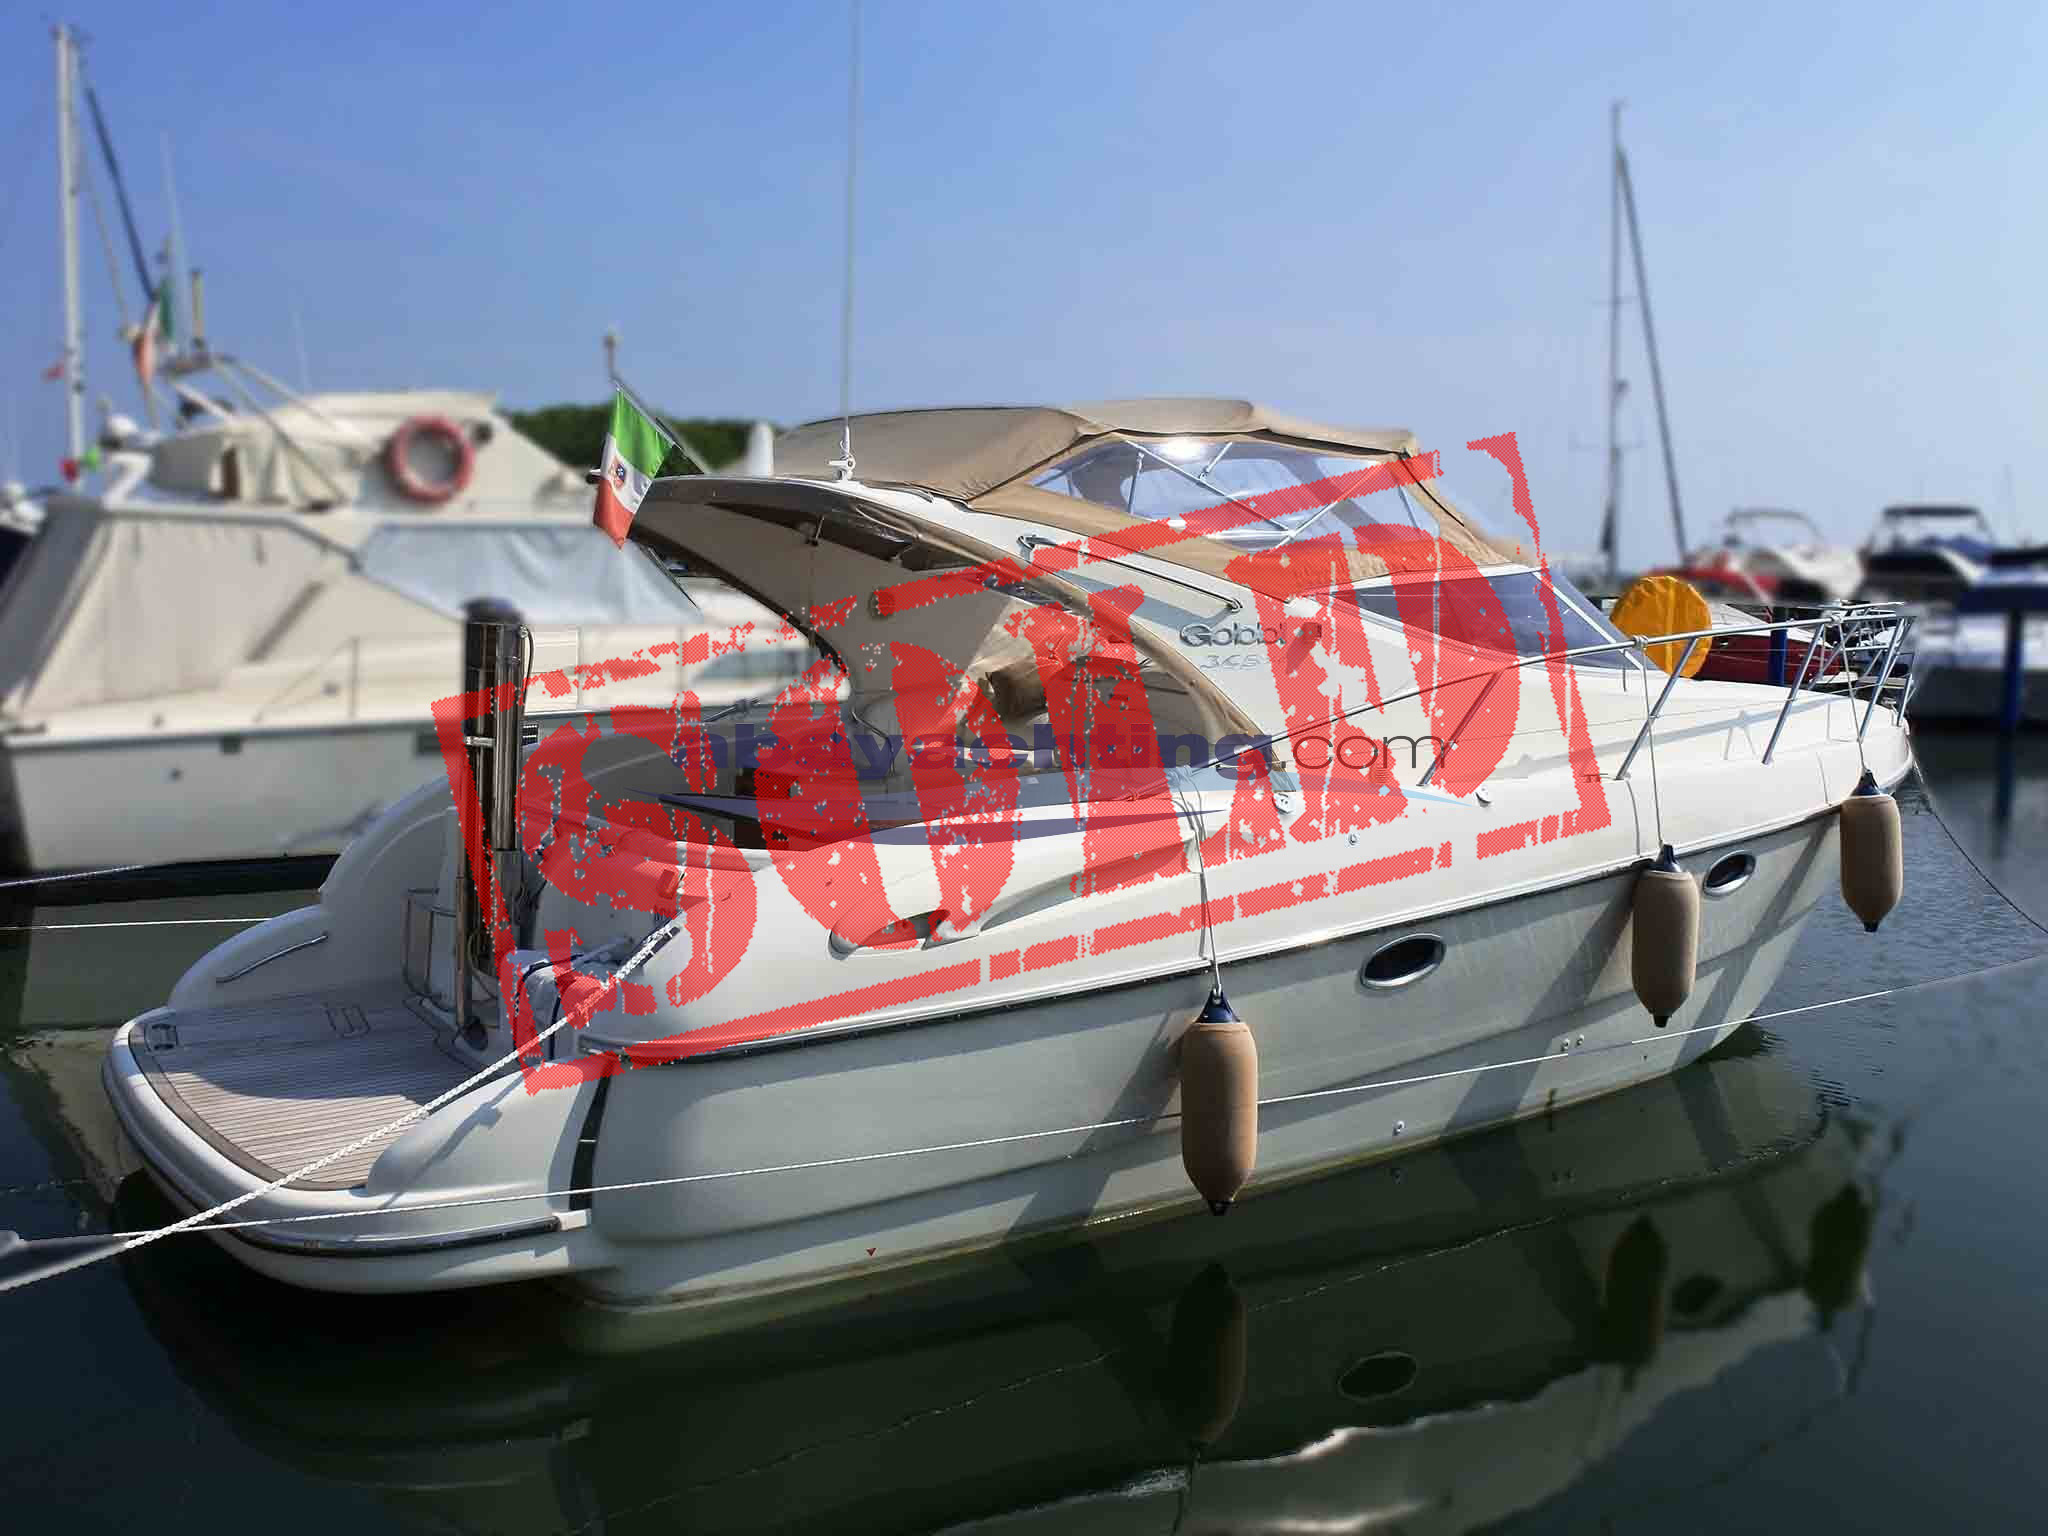 Gobbi 345 sold